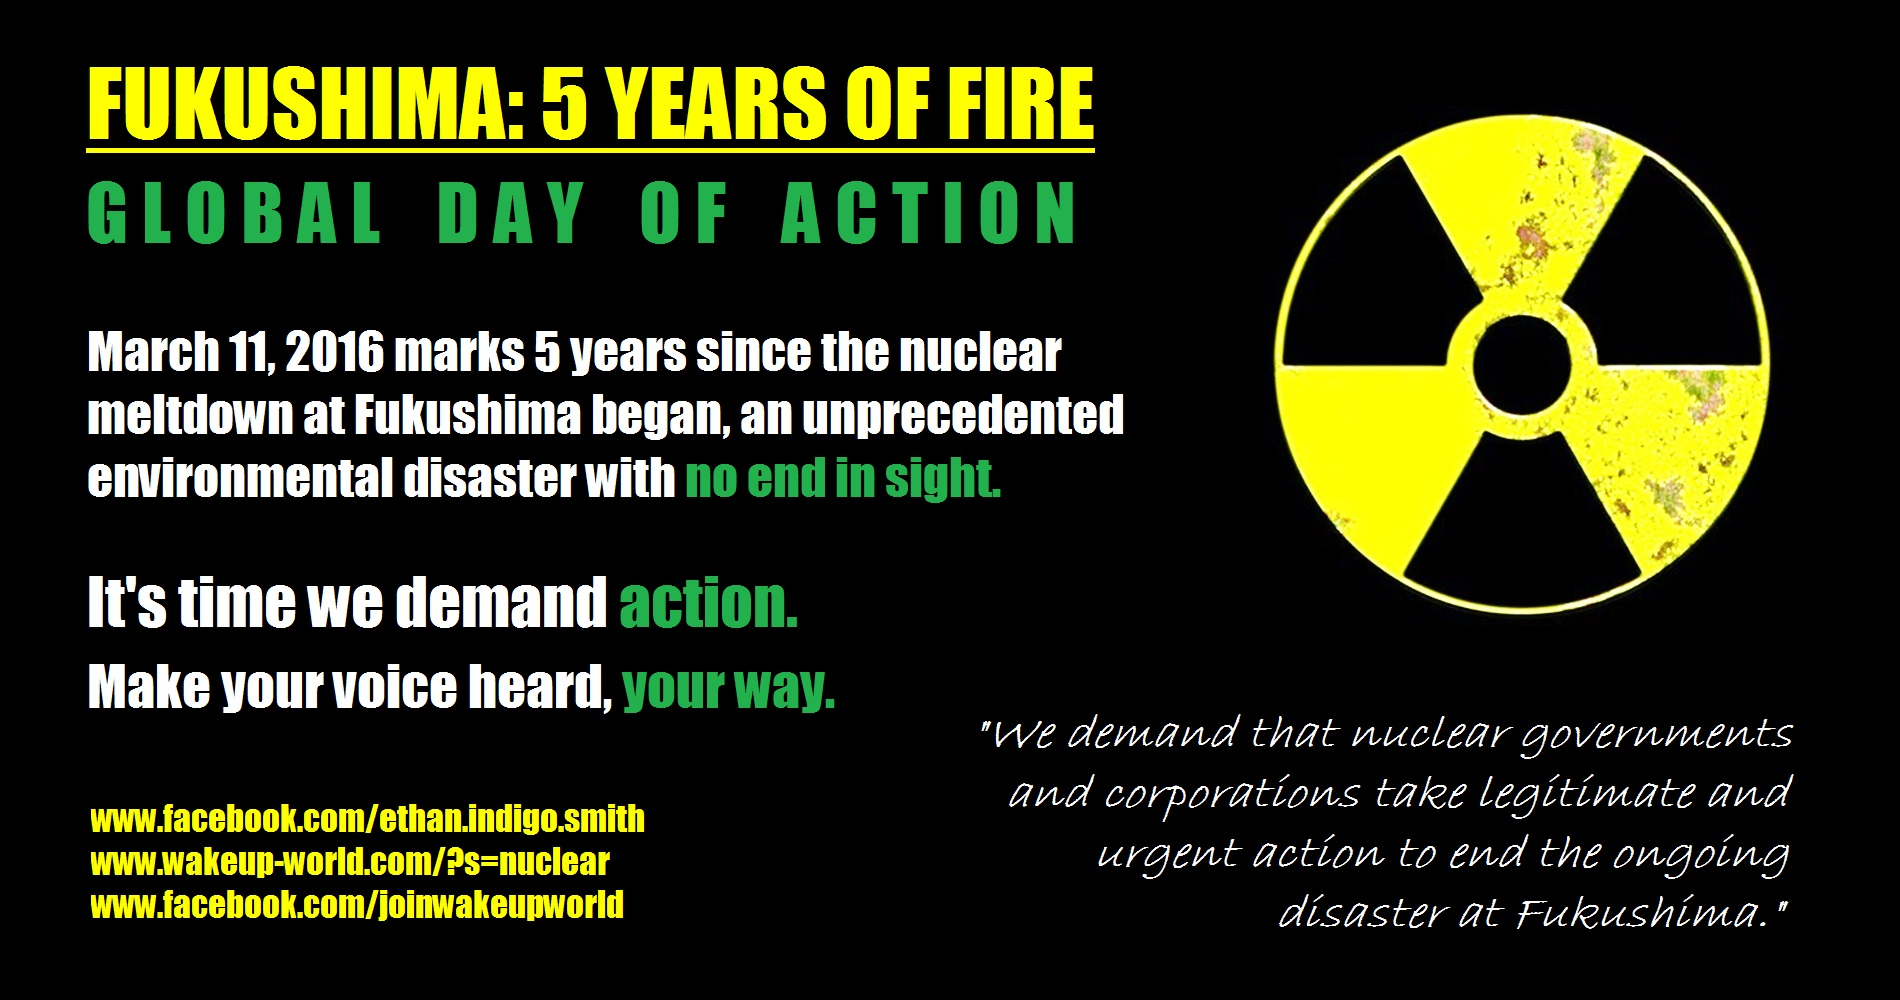 Fukushima: 5 Years of Fire – Global Day of Action 03/11/2016 Fukushima-5-Years-of-Fire